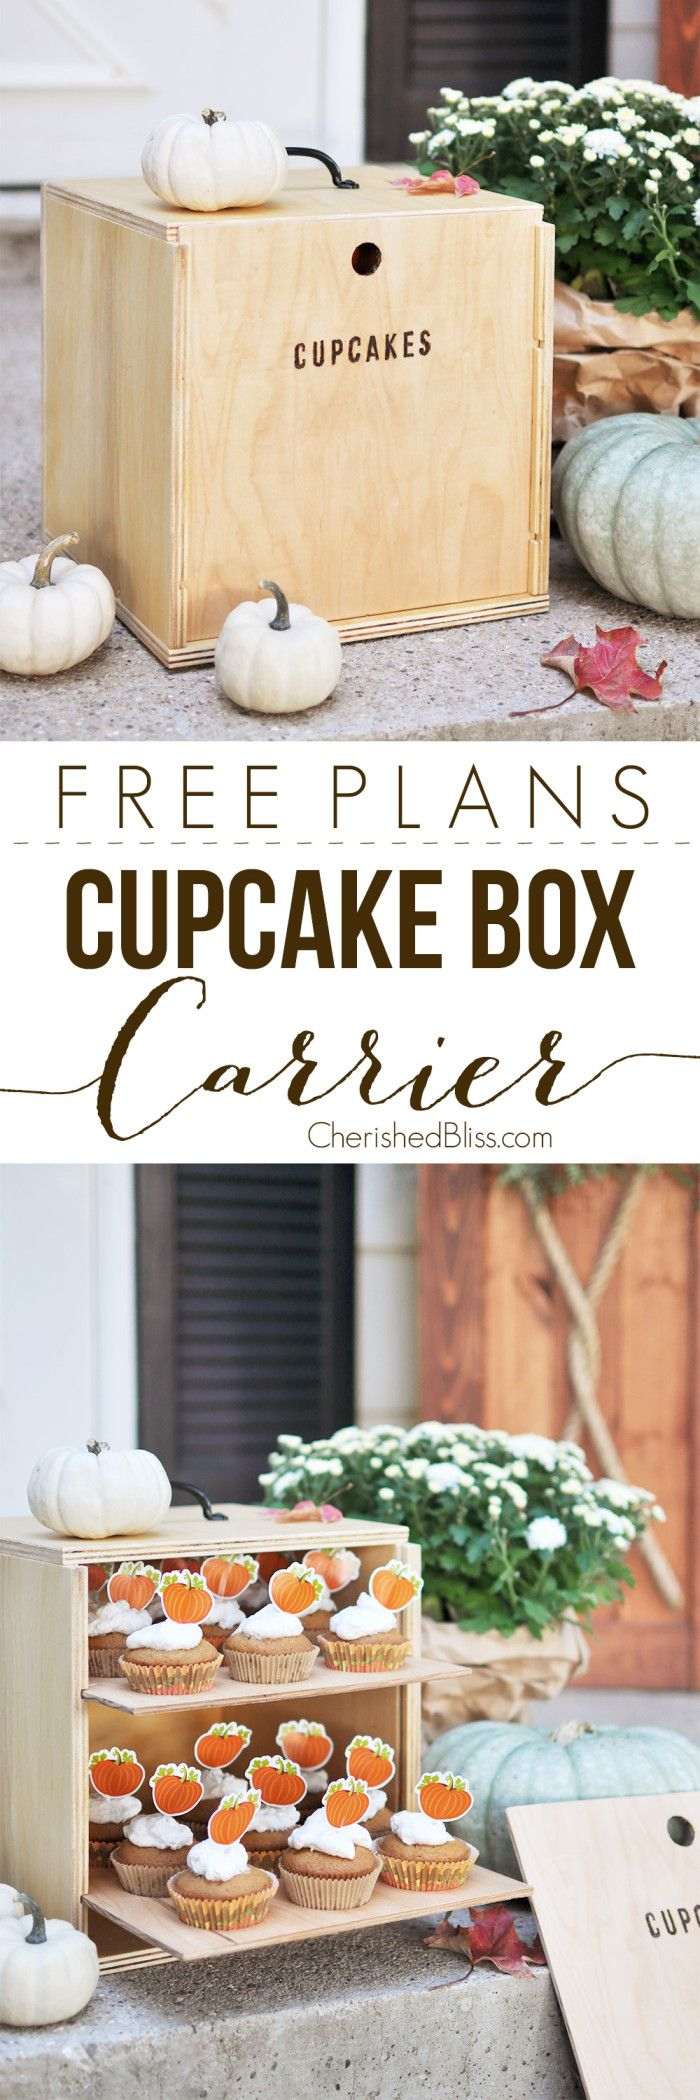 DIY Cupcake Box Carrier Tutorial Cupcake boxes, Diy, Diy